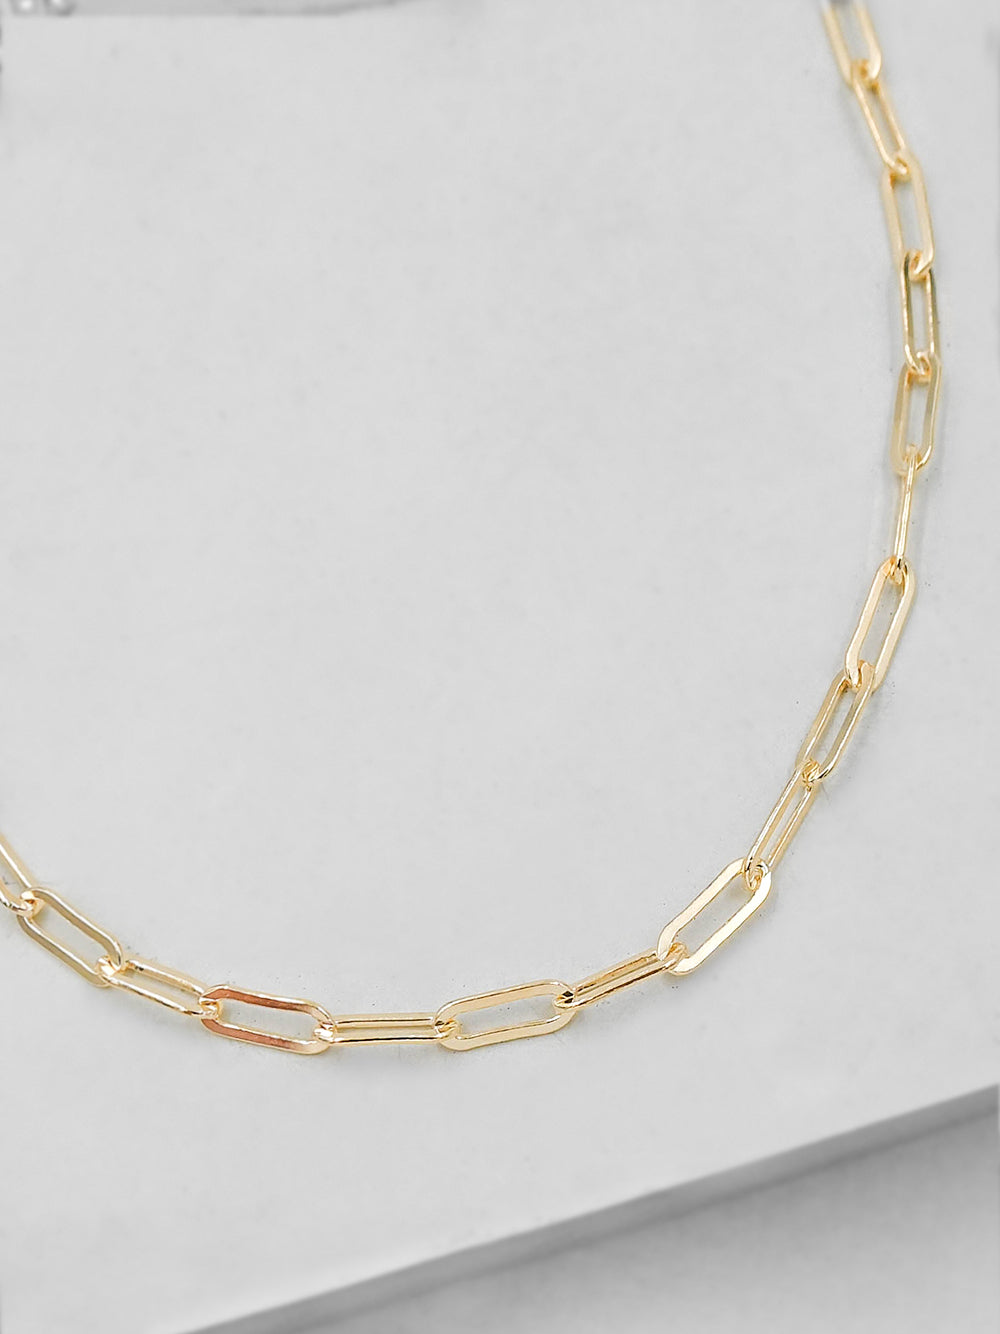 Paperclip Gold Choker Necklace  by The Faint Hearted Jewelry